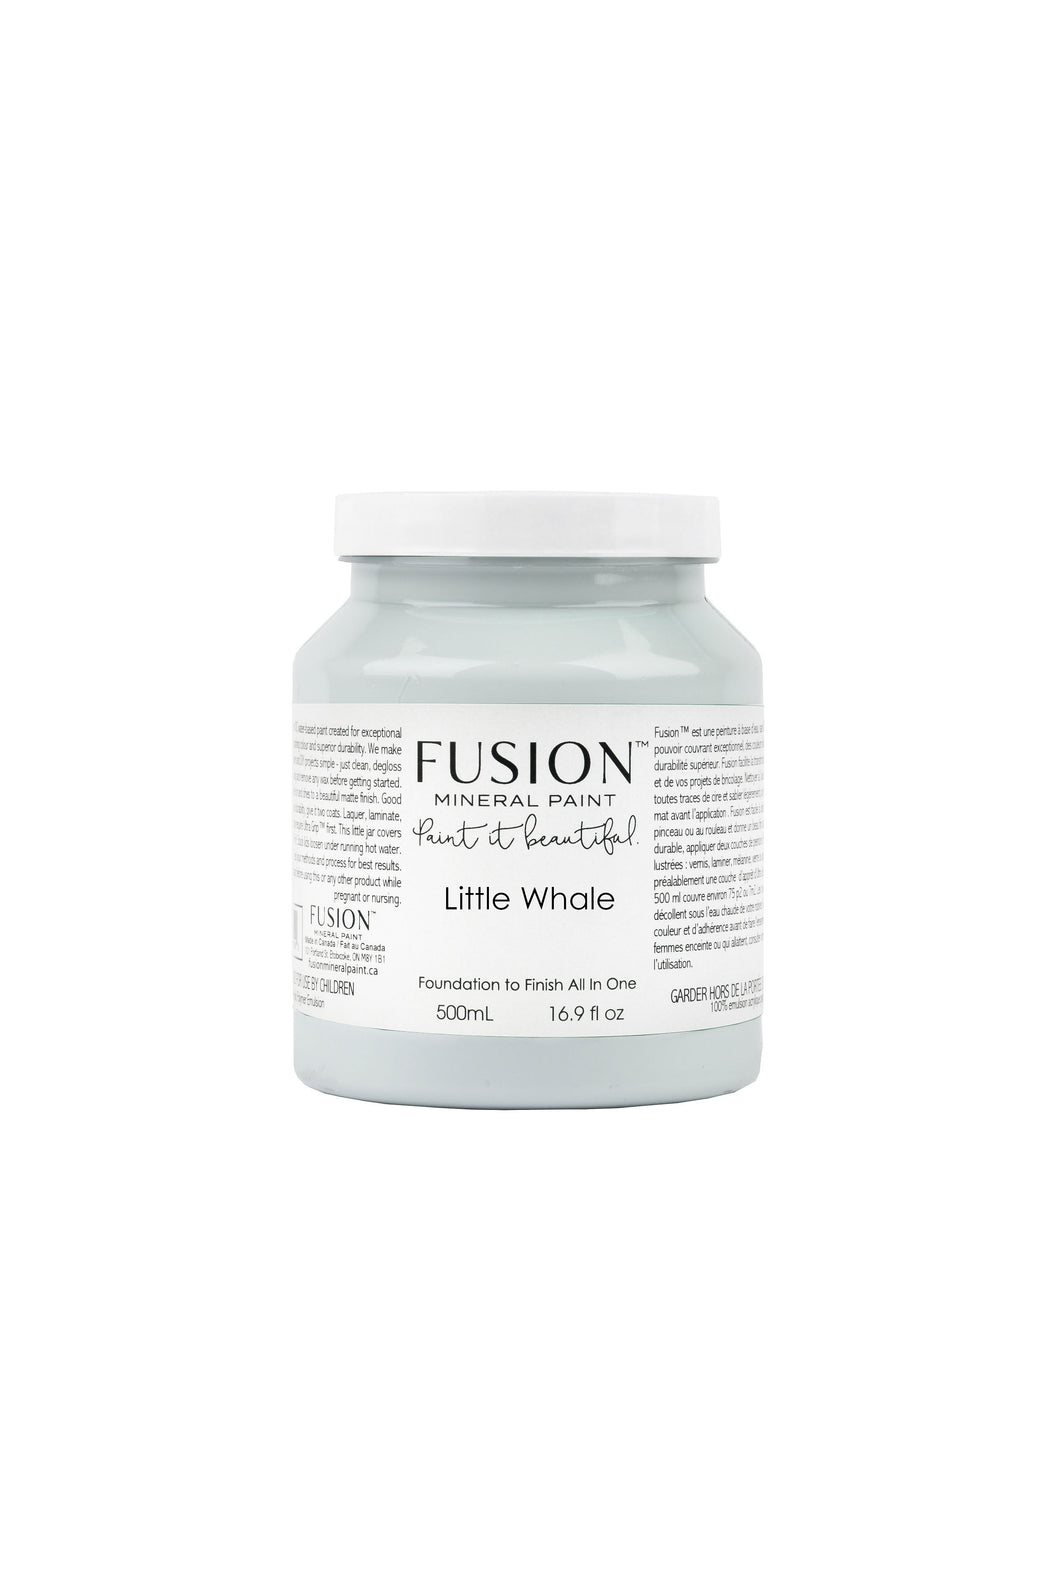 Fusion mineral paint | Little Whale | 500ml | Colour Me KT